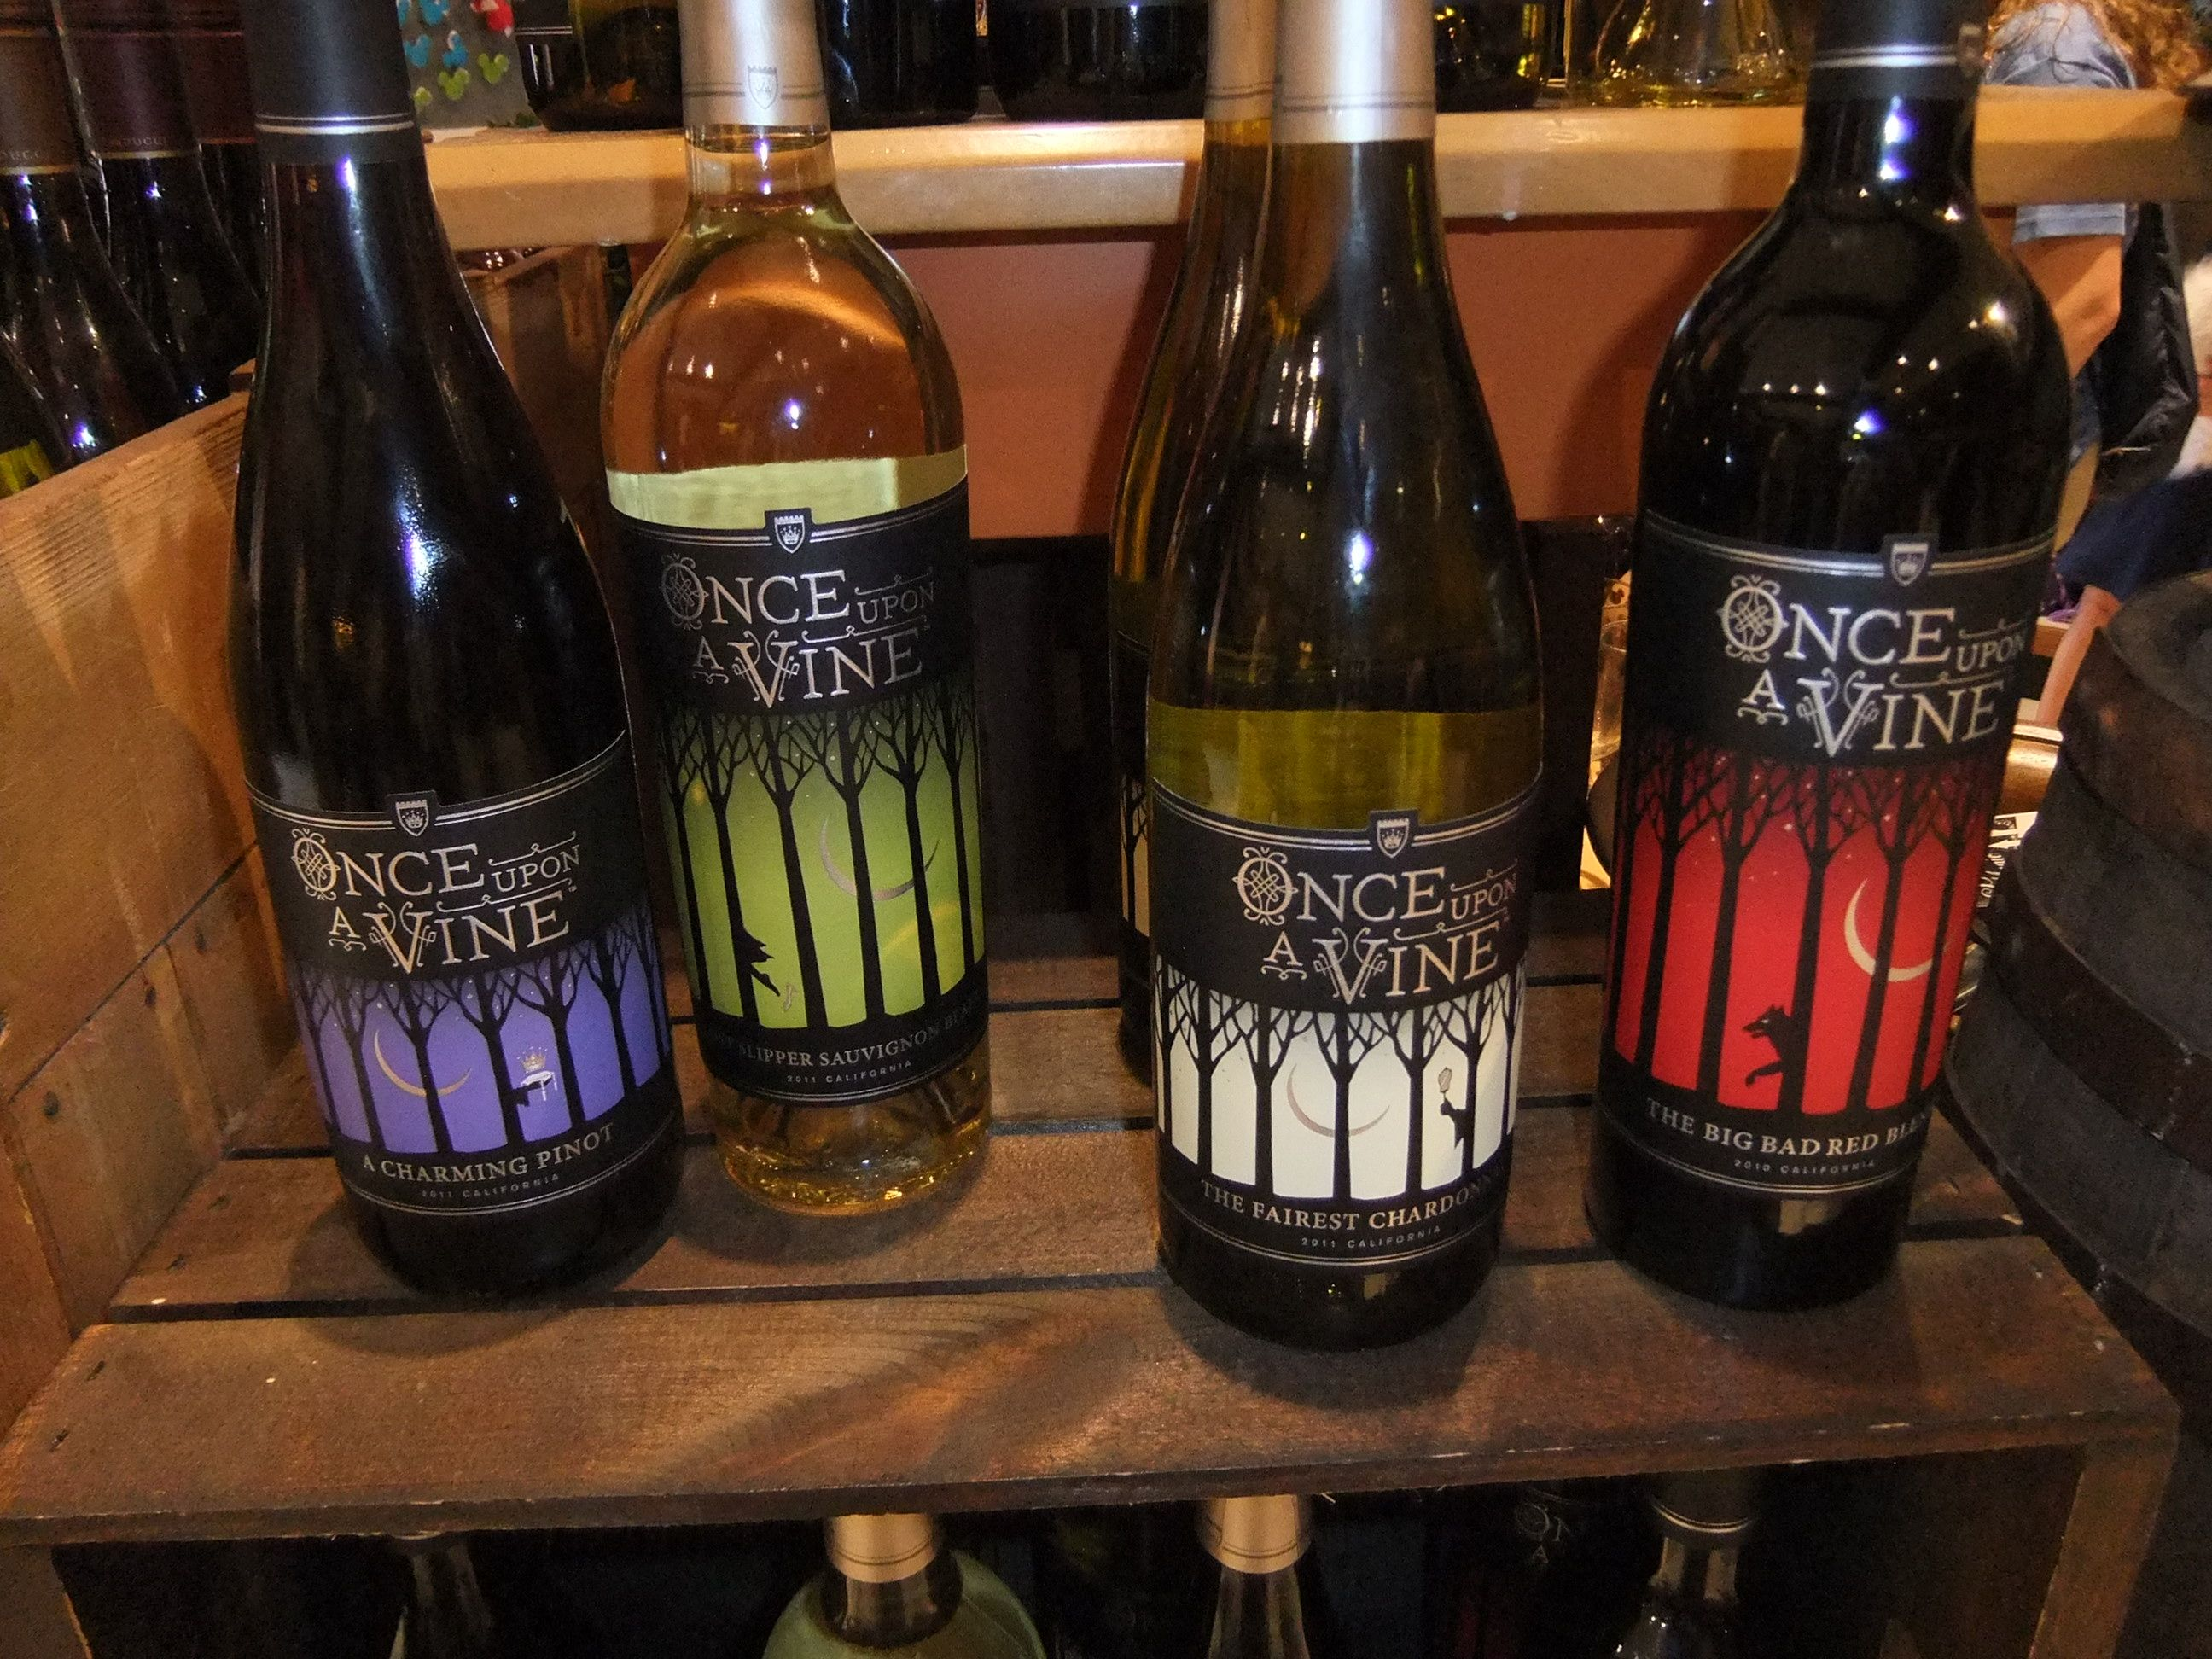 Once Upon a Vine Wine - Fairy Tale Wines